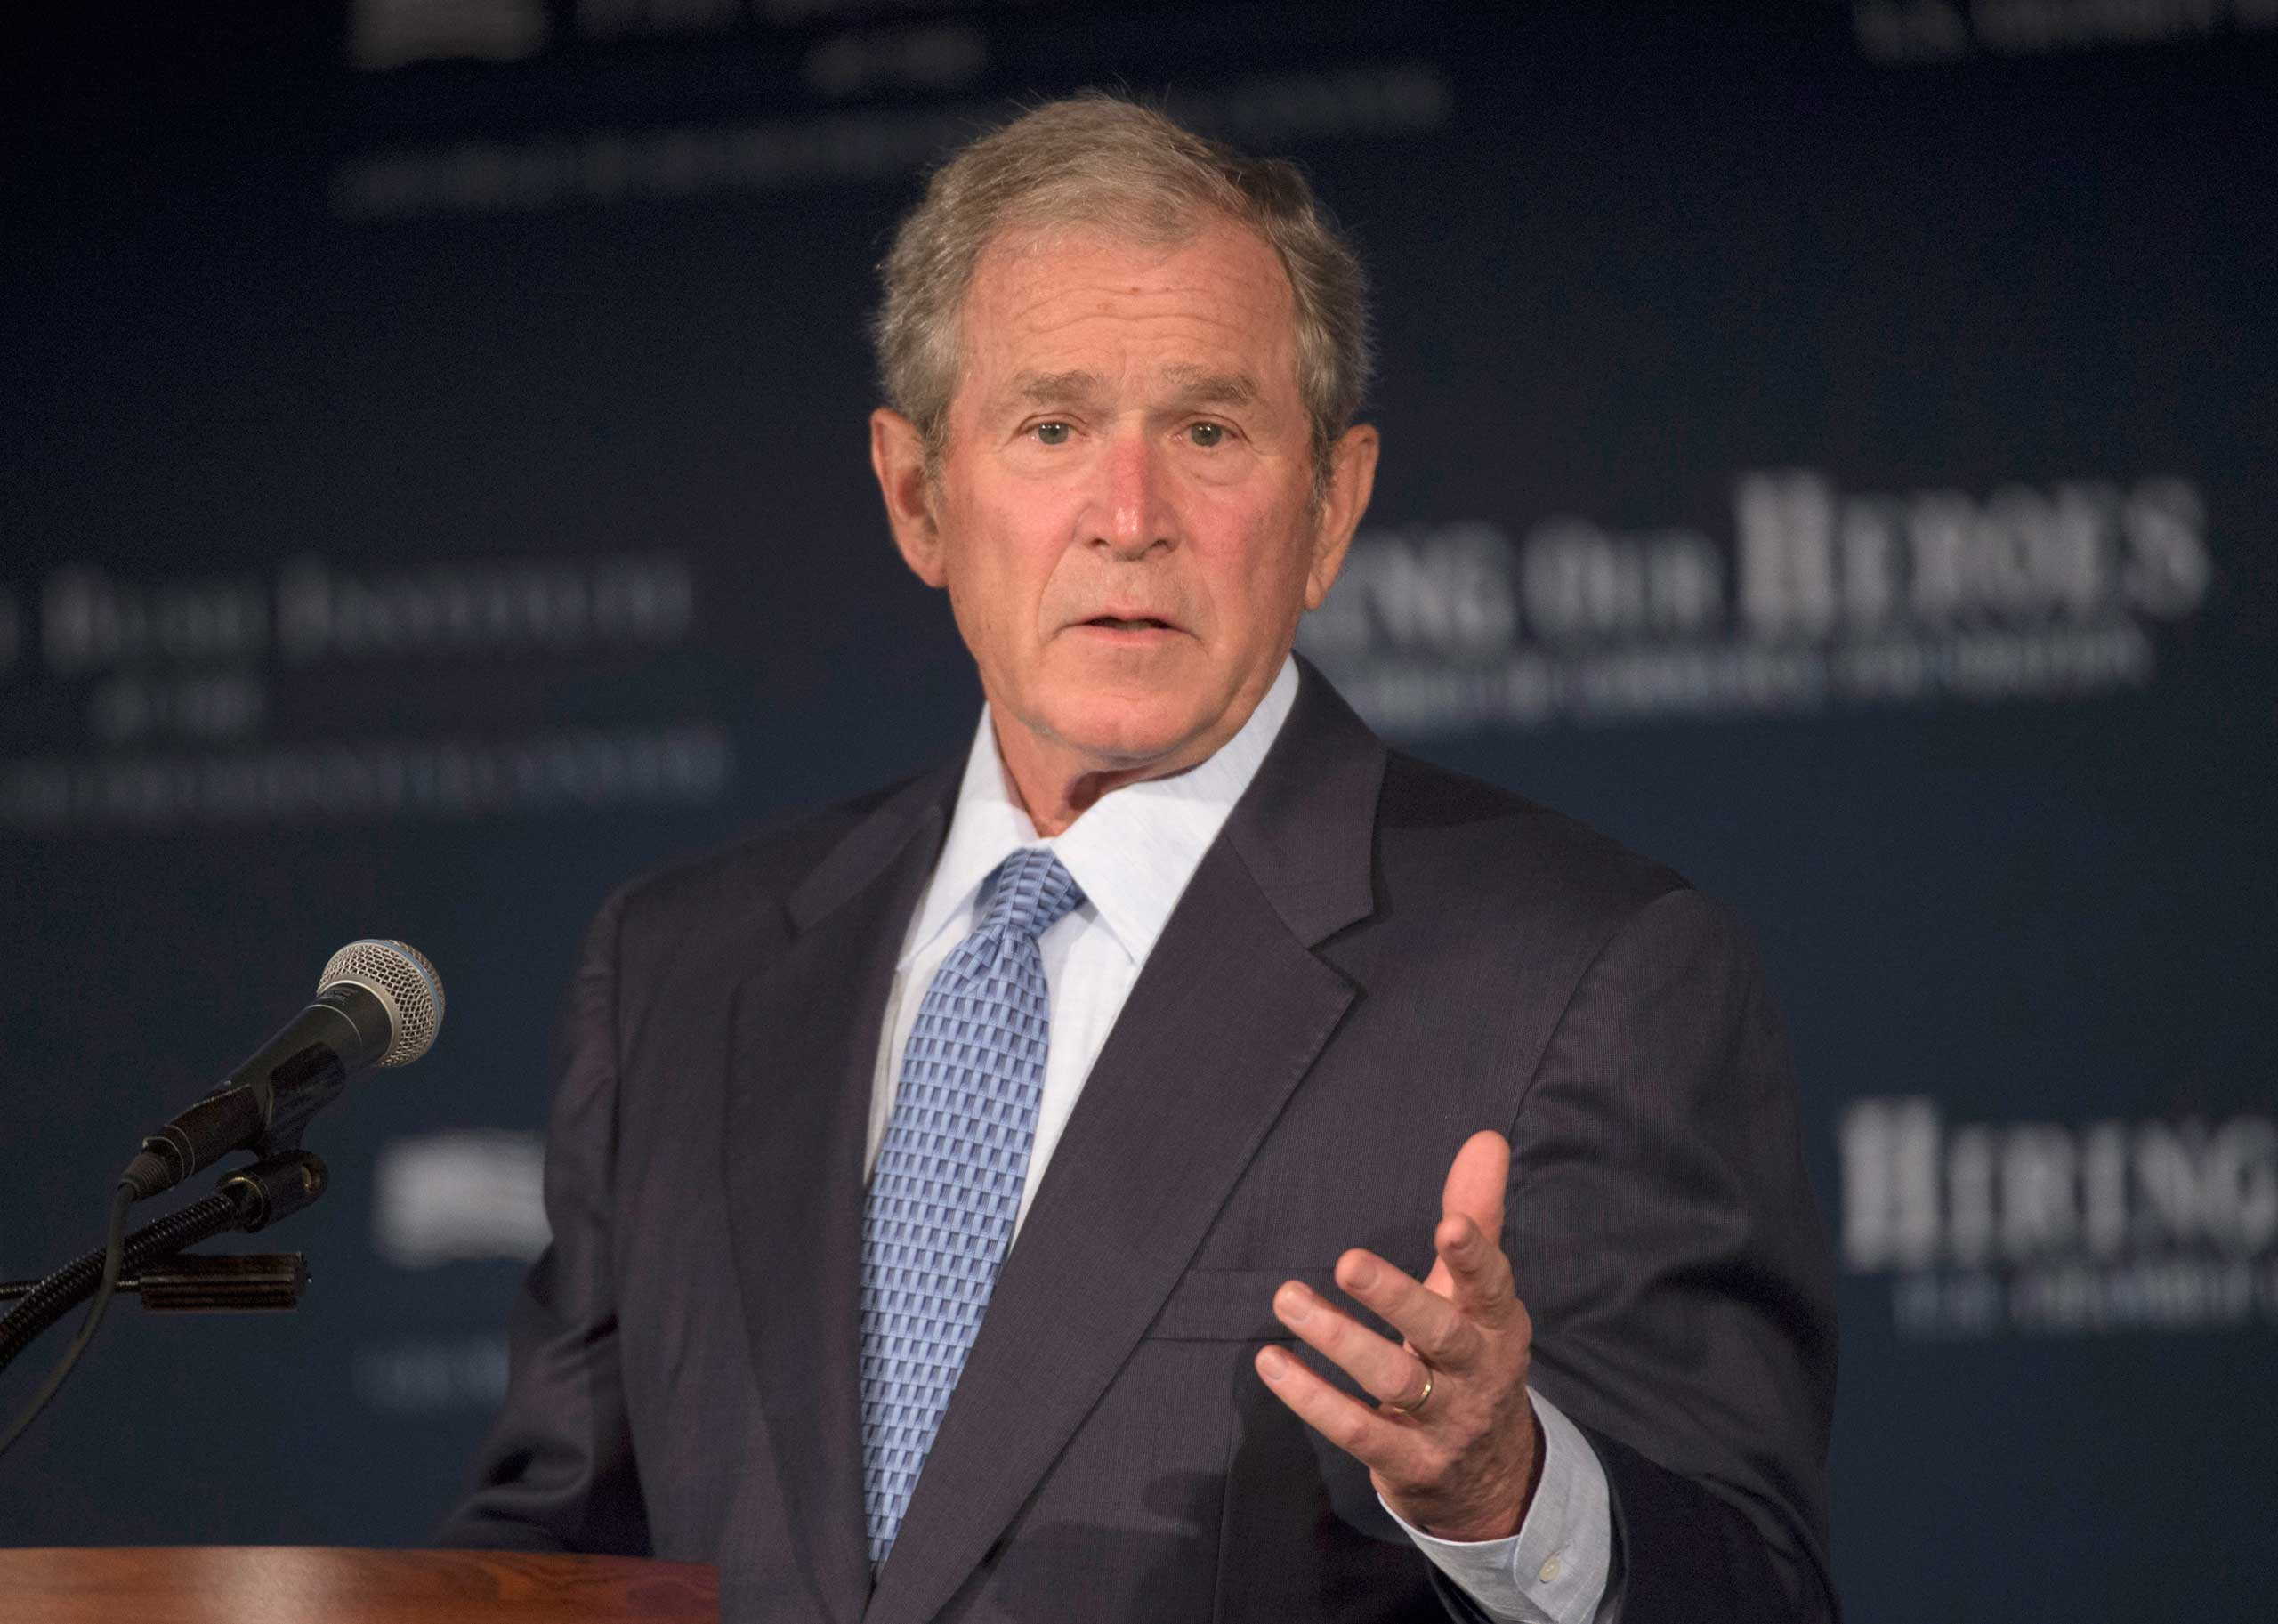 Former President George W. Bush speaks at the U.S. Chamber of Commerce Foundation's Hiring Our Heroes program and the George W. Bush Institute's Military Service Initiative national summit, June 24, 2015, at the U.S. Chamber of Commerce in Washington.